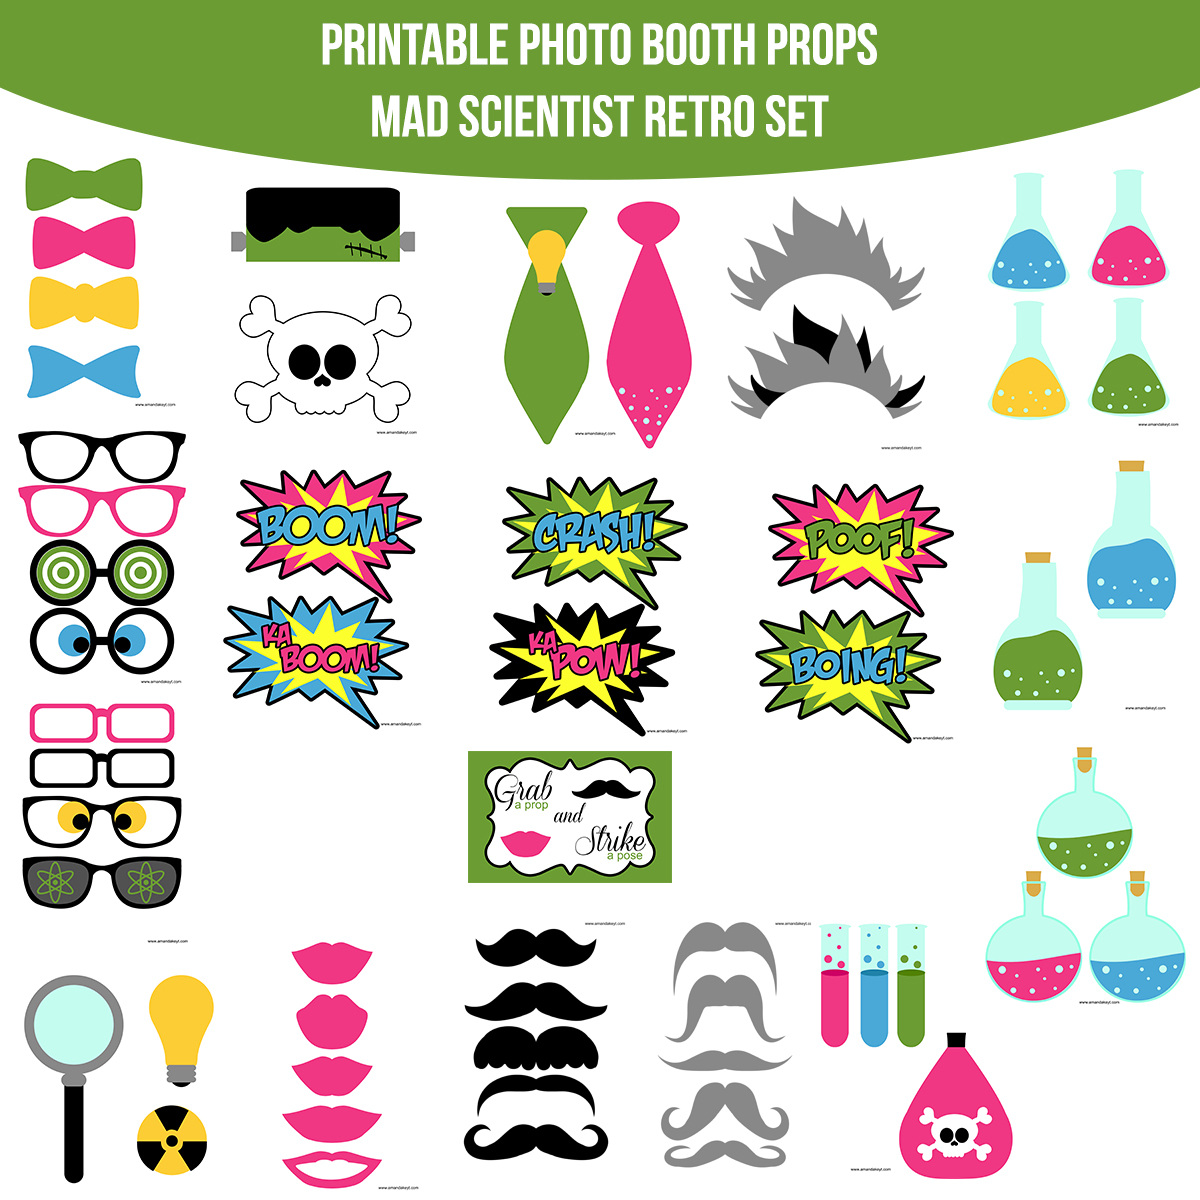 See the Set - To View The Whole Mad Scientist Retro Printable Photo Booth Prop Set Click Here